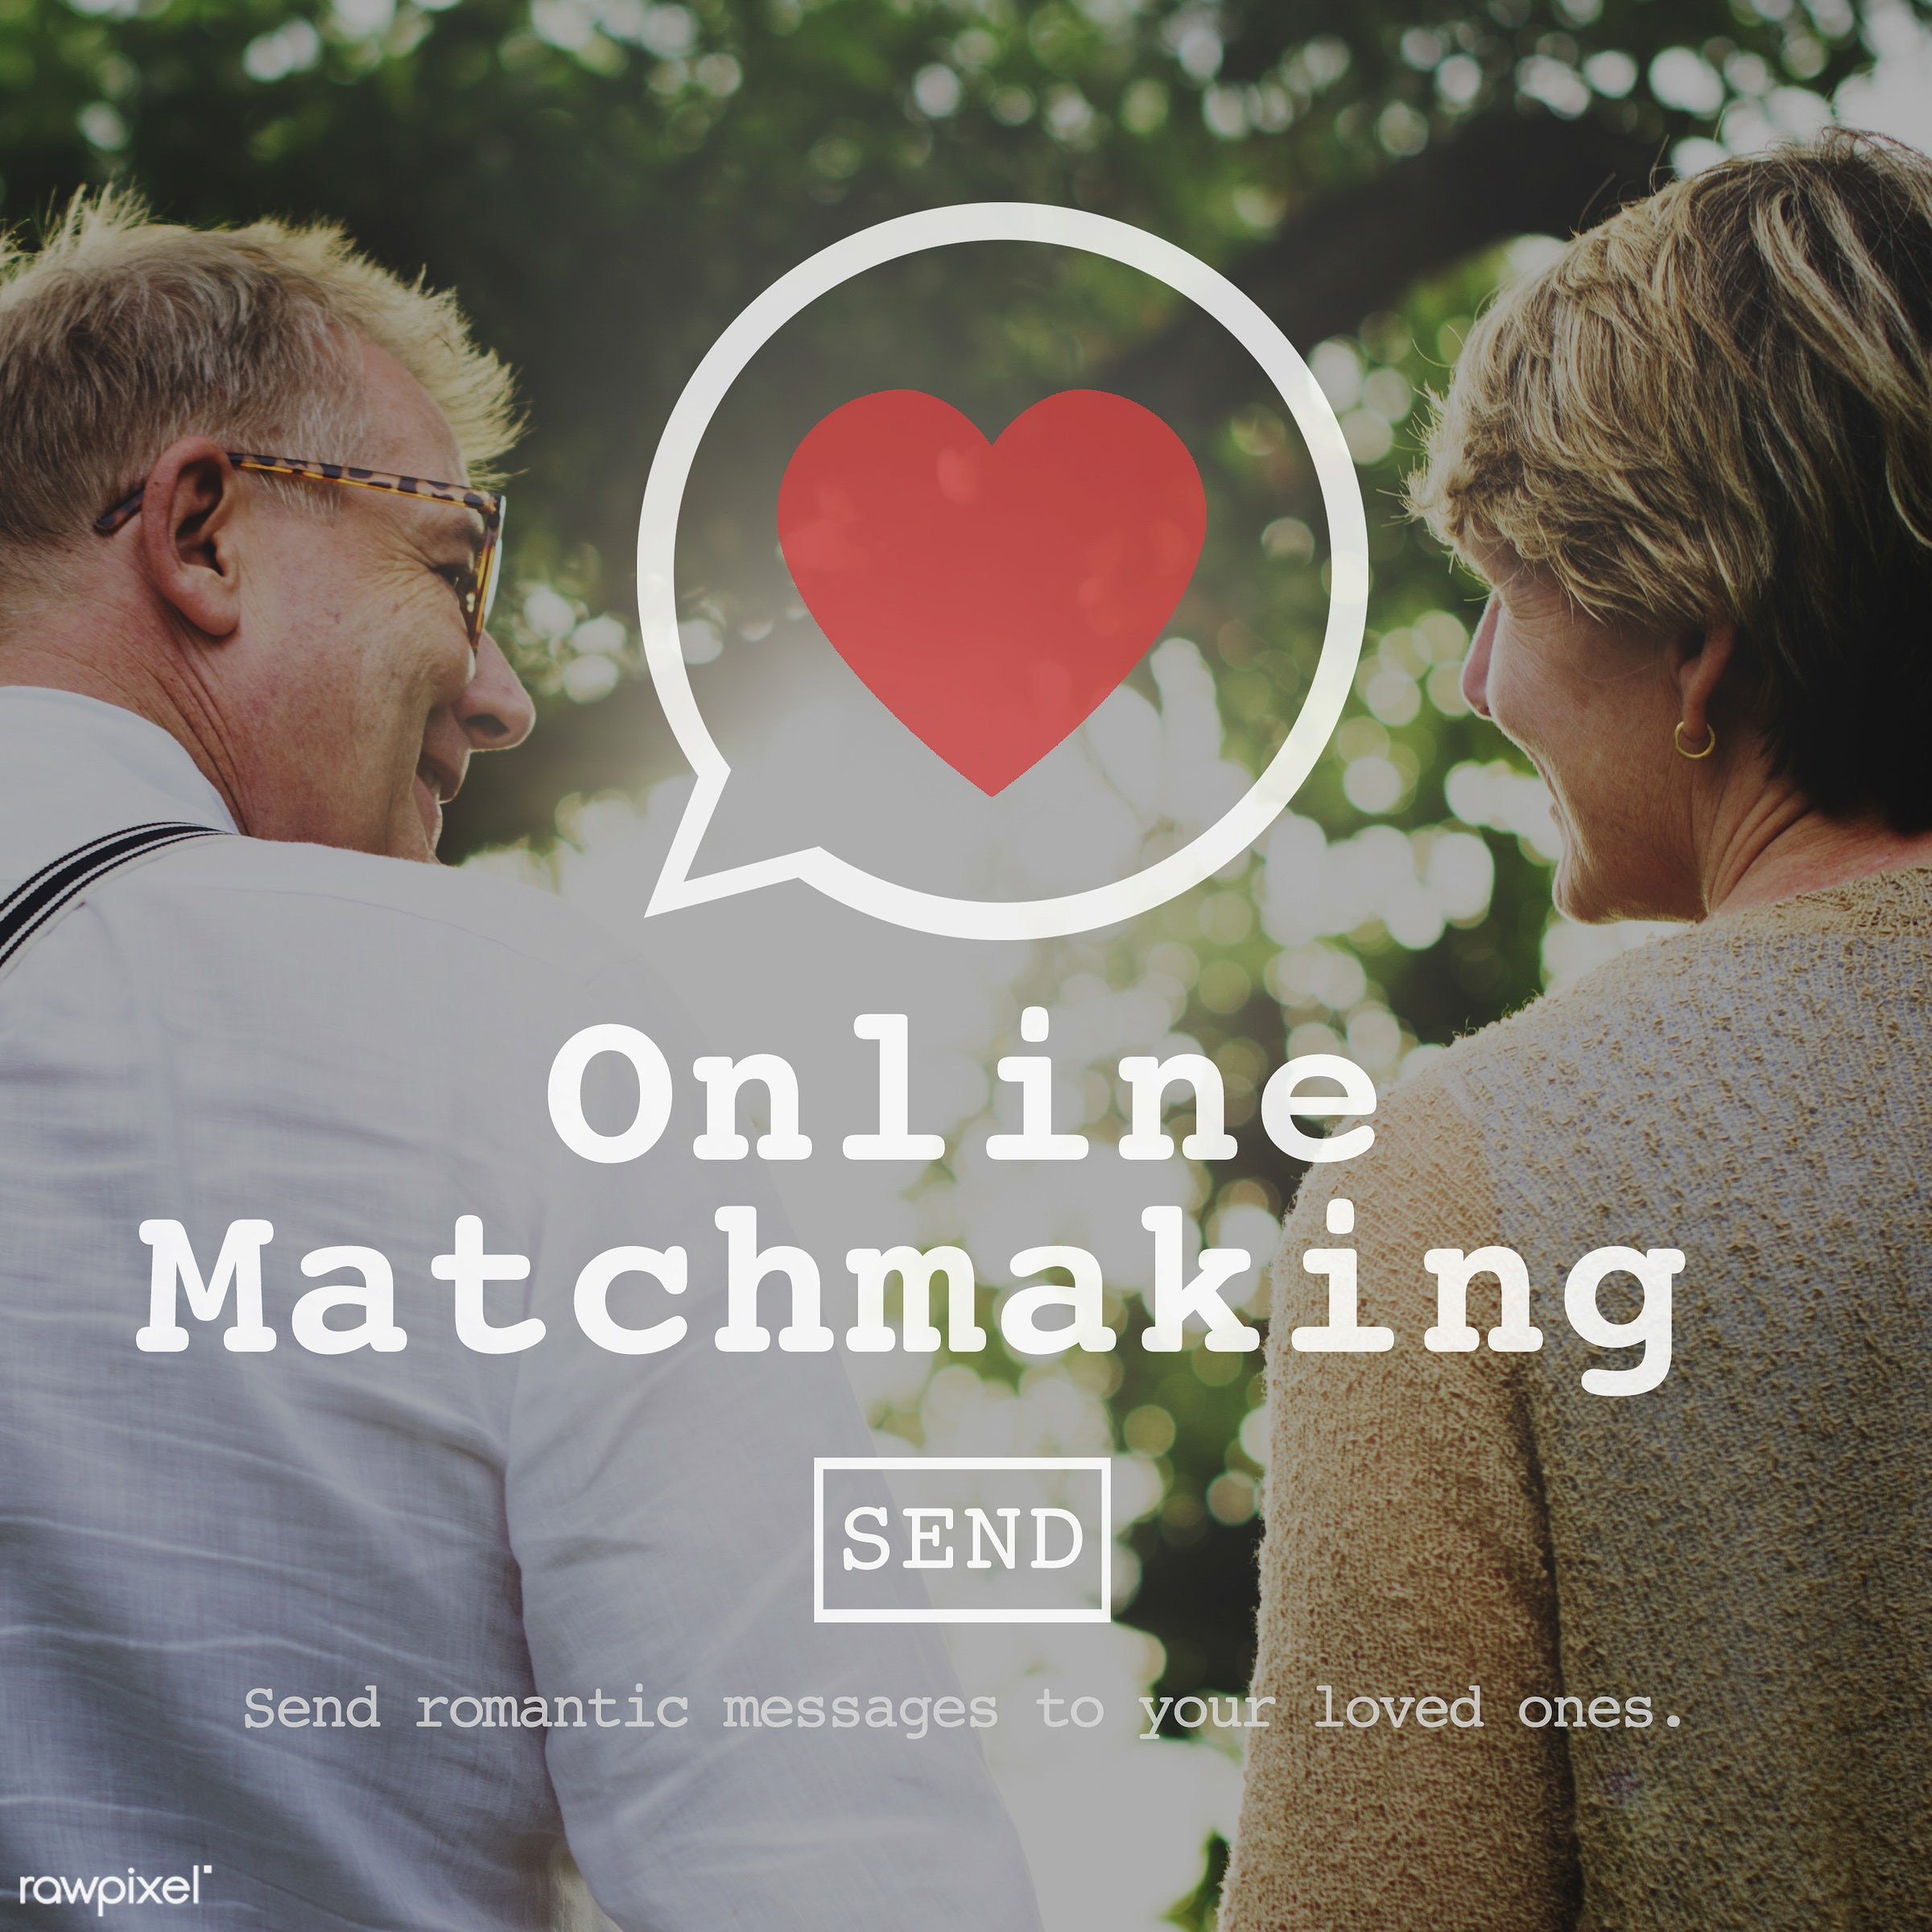 bonding, bright, cheerful, communication, connect, couple, court, date, dating, expression, feelings, go steady, happiness,...